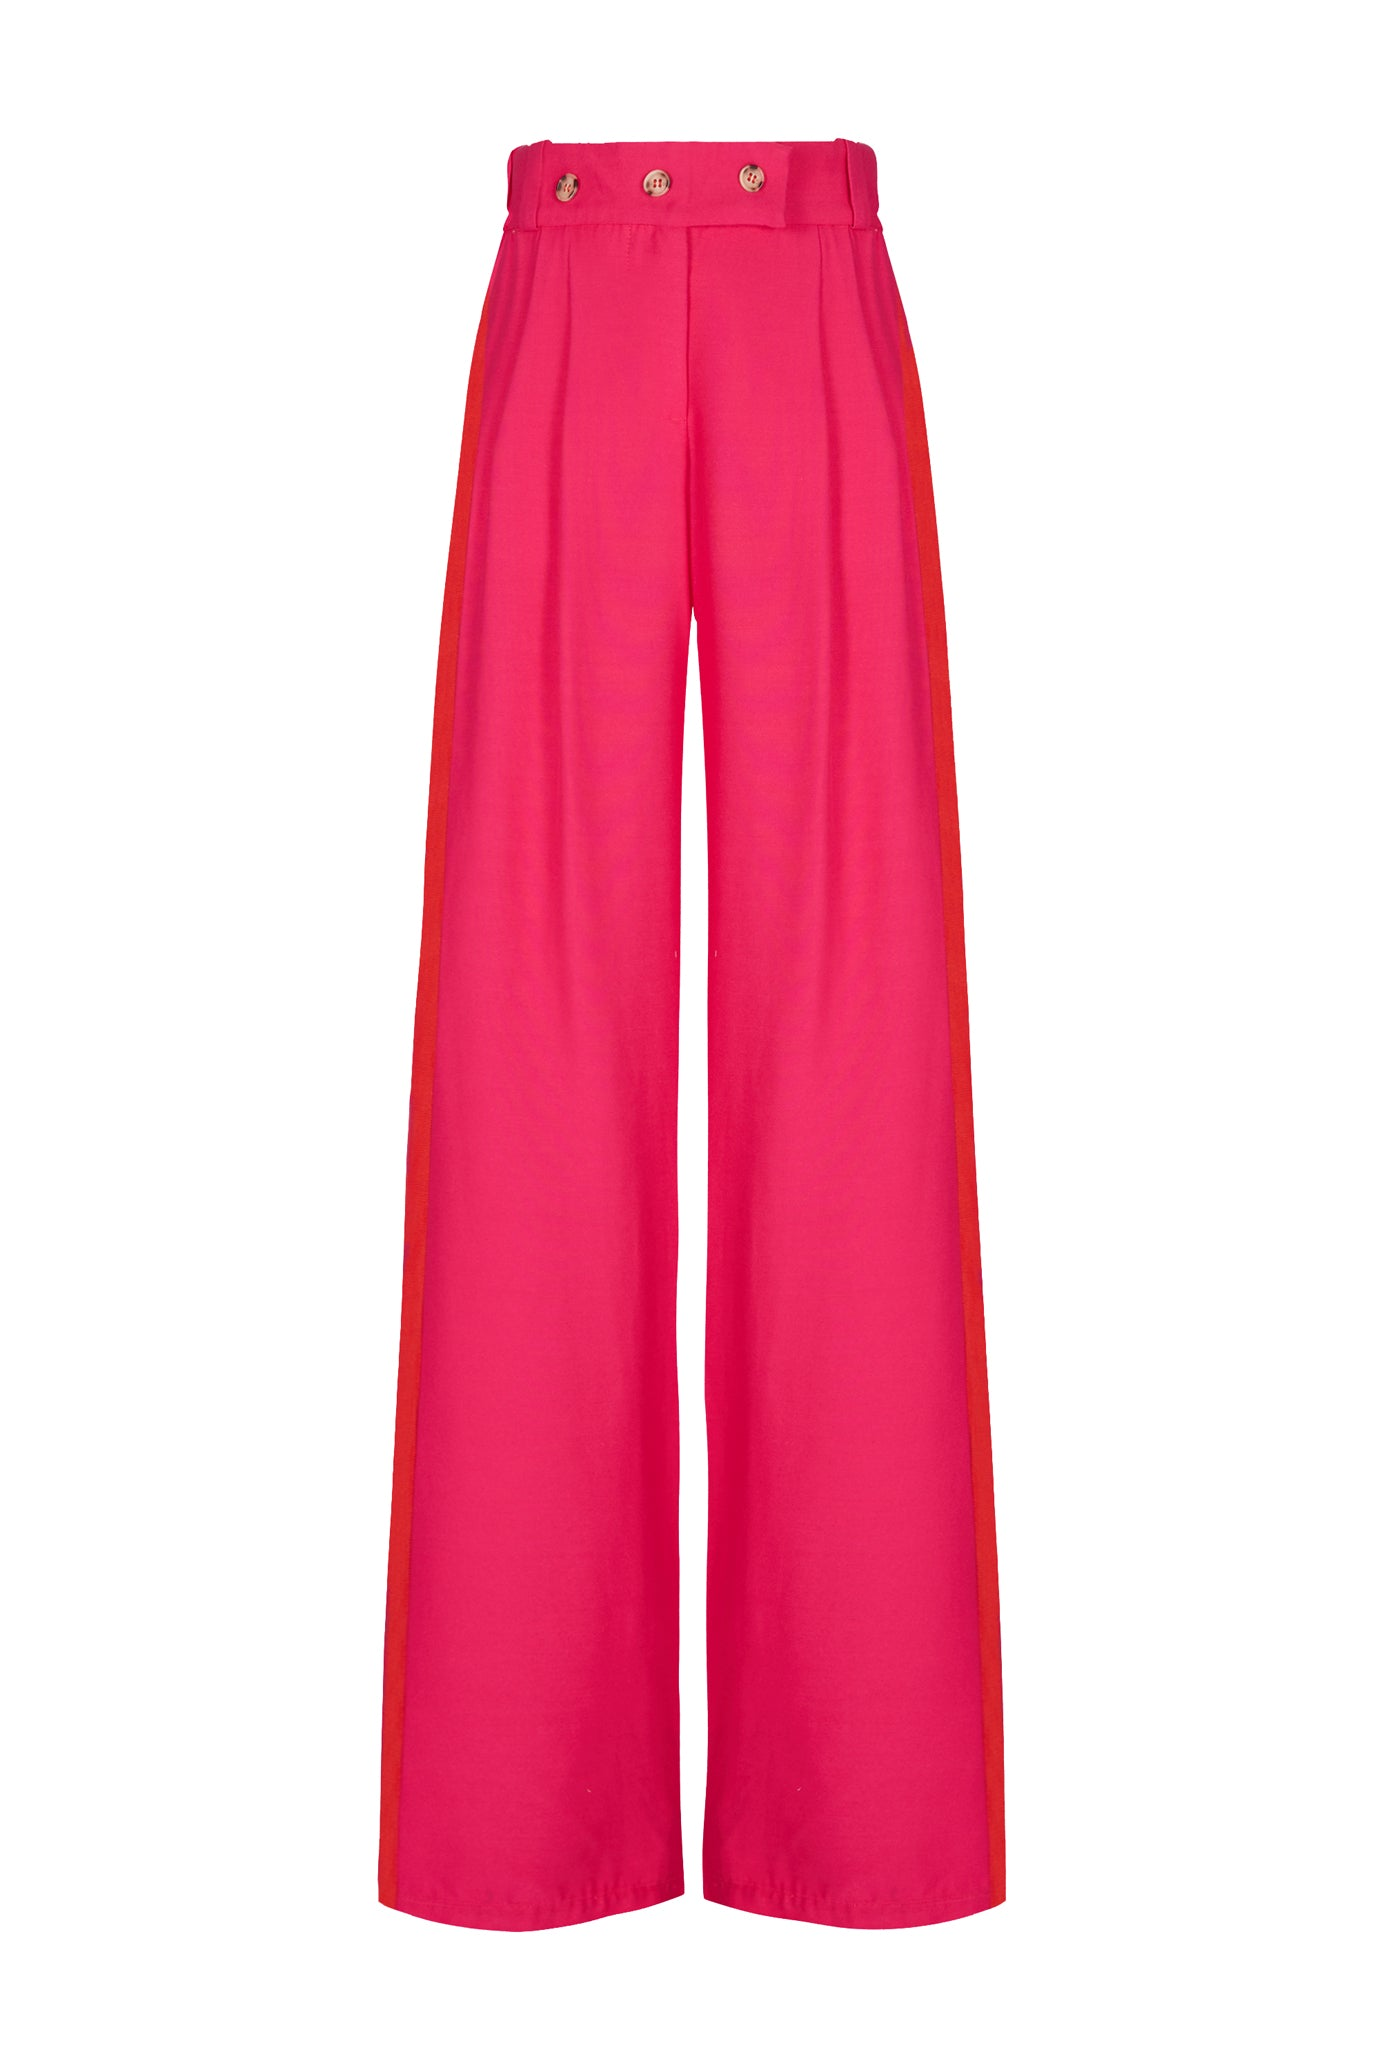 The Boyfriend Trouser - Hot Pink & Red Viscose